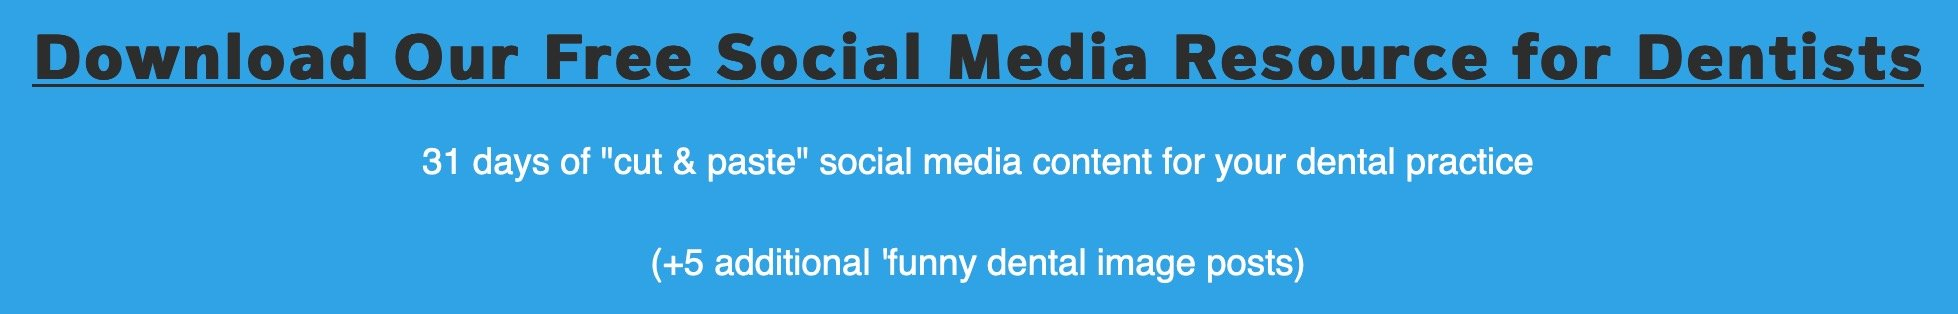 Social+Media+For+Dentists+Done+Right +4+Things+You+Can+Do+This+Week+2021-01-09+at+11.51.10+AM